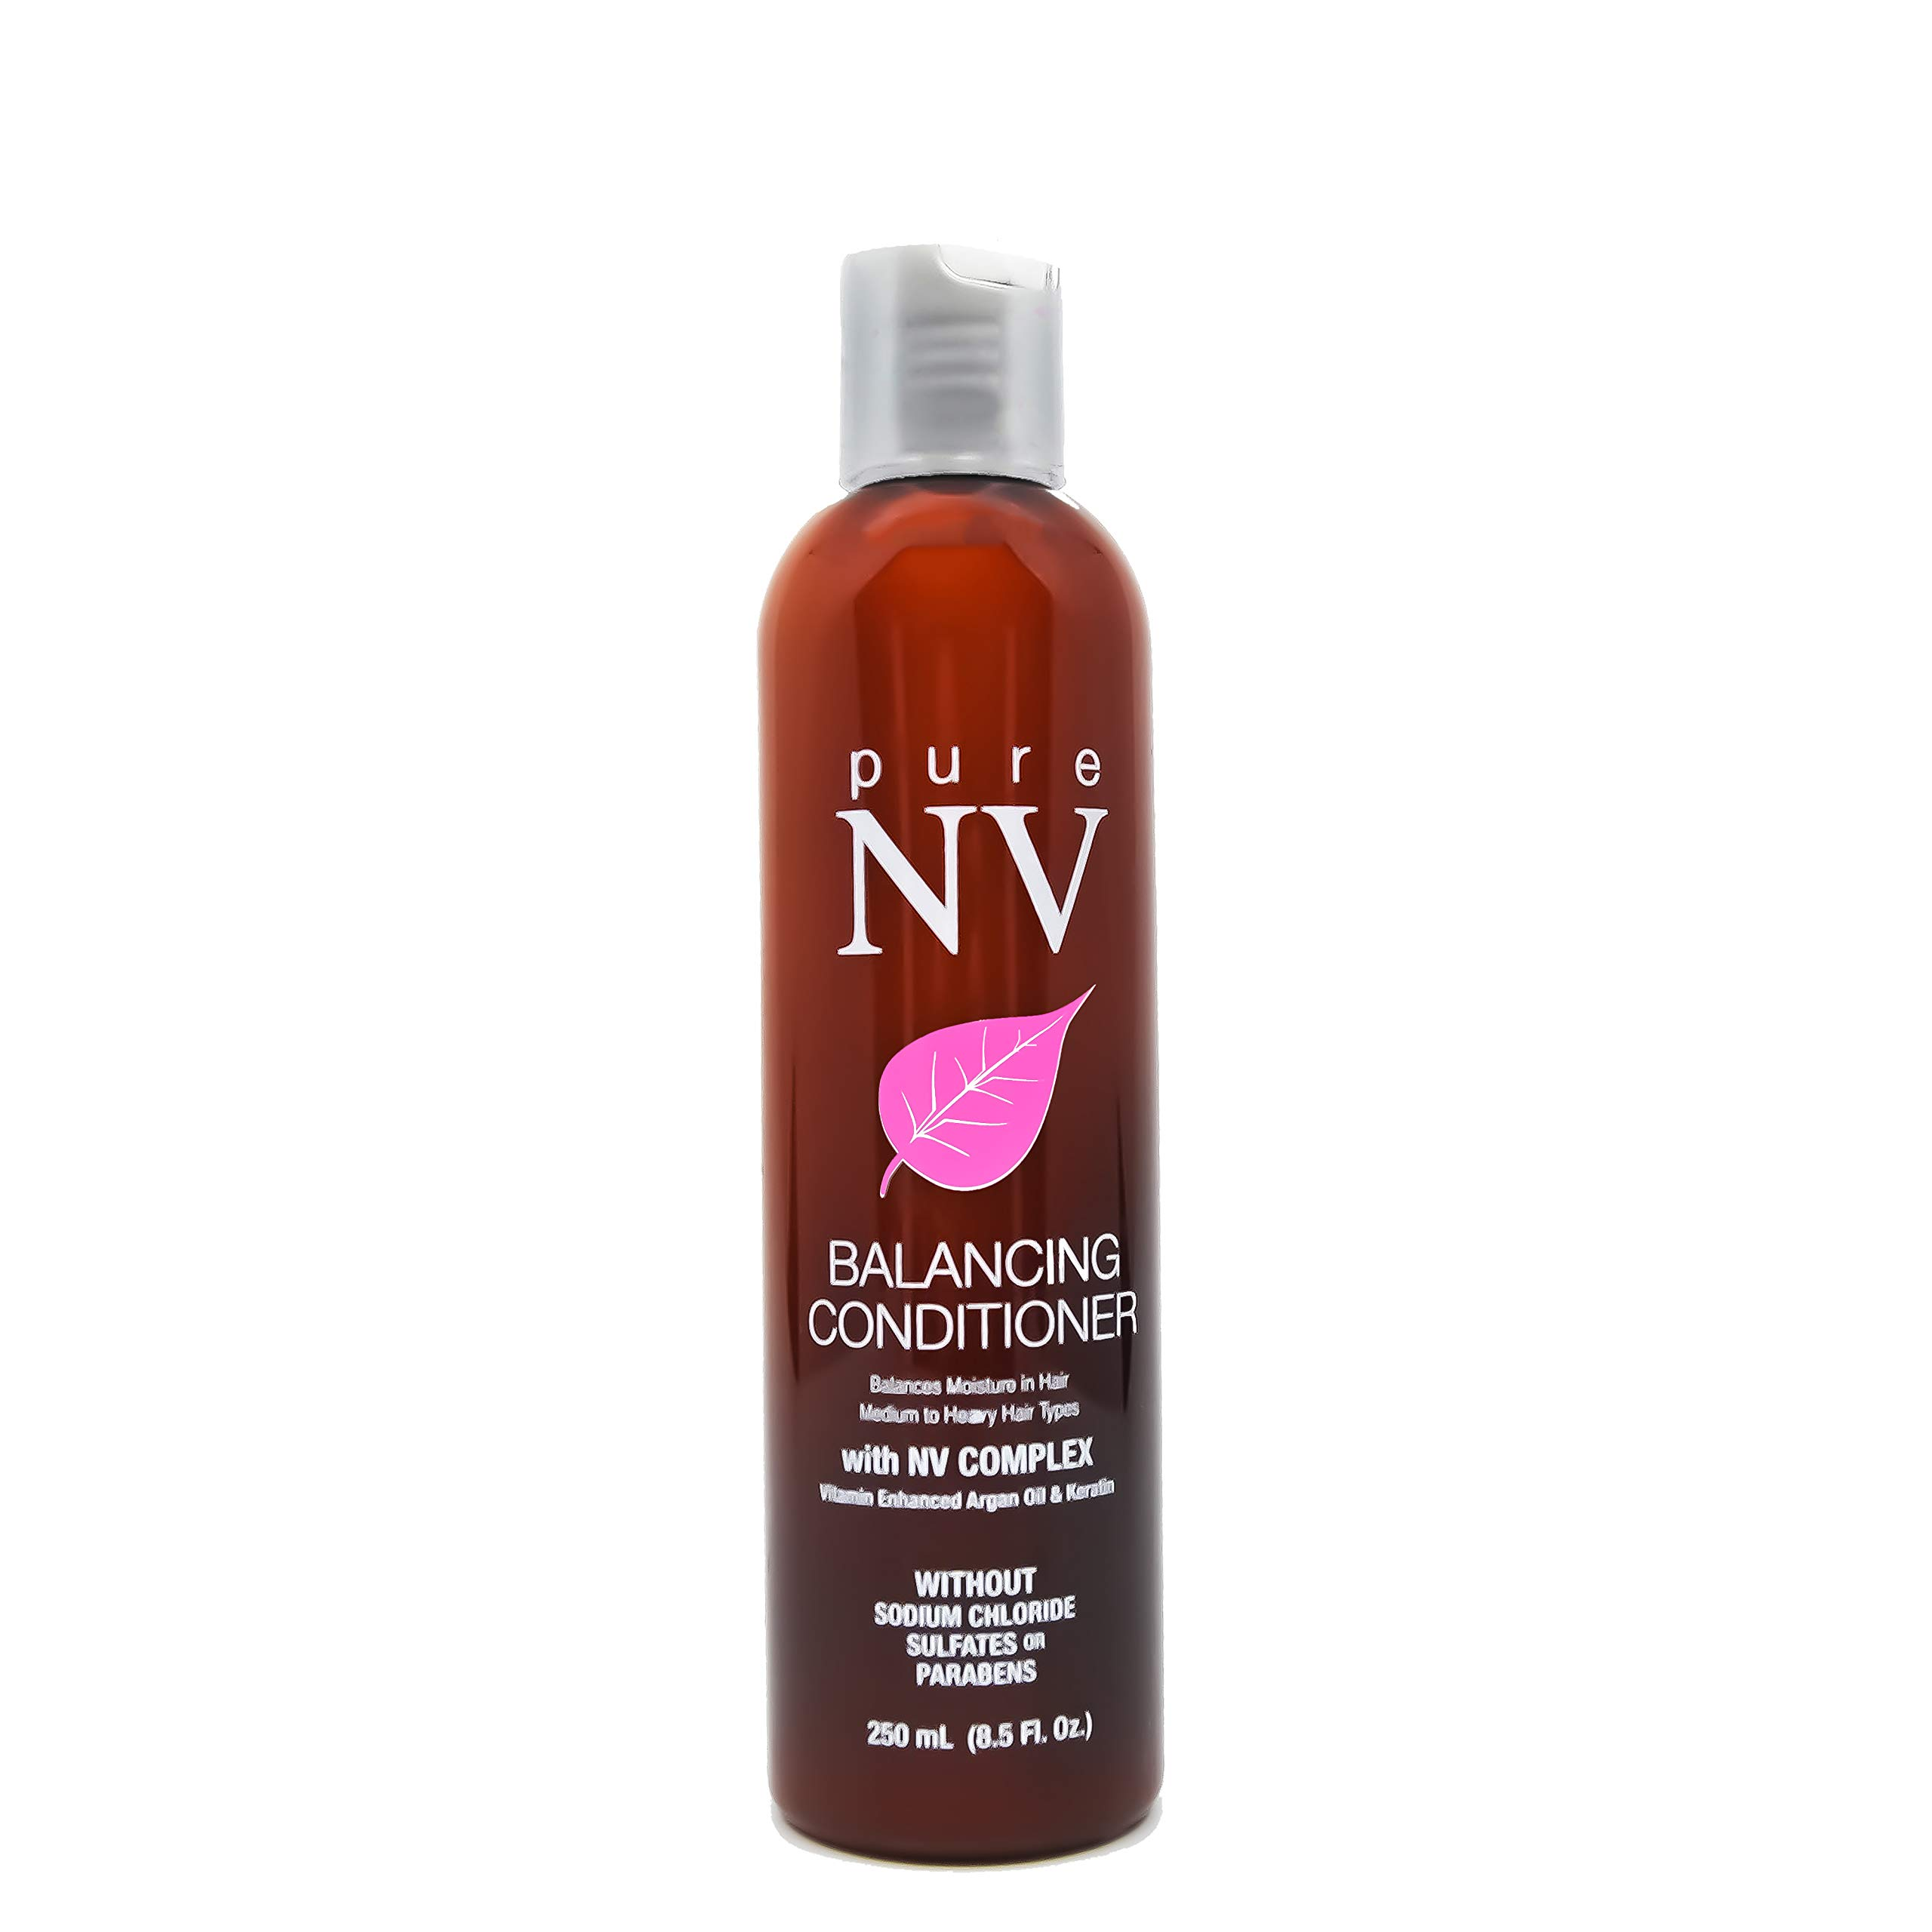 Pure NV Balancing Conditioner: Infused with Argan Oil, Keratin, Collagen, Natural Vitamins, and Lavender for Smoother, More Manageable Hair- Sulfate & Sodium Chloride Free (8.5 Oz Bottle)